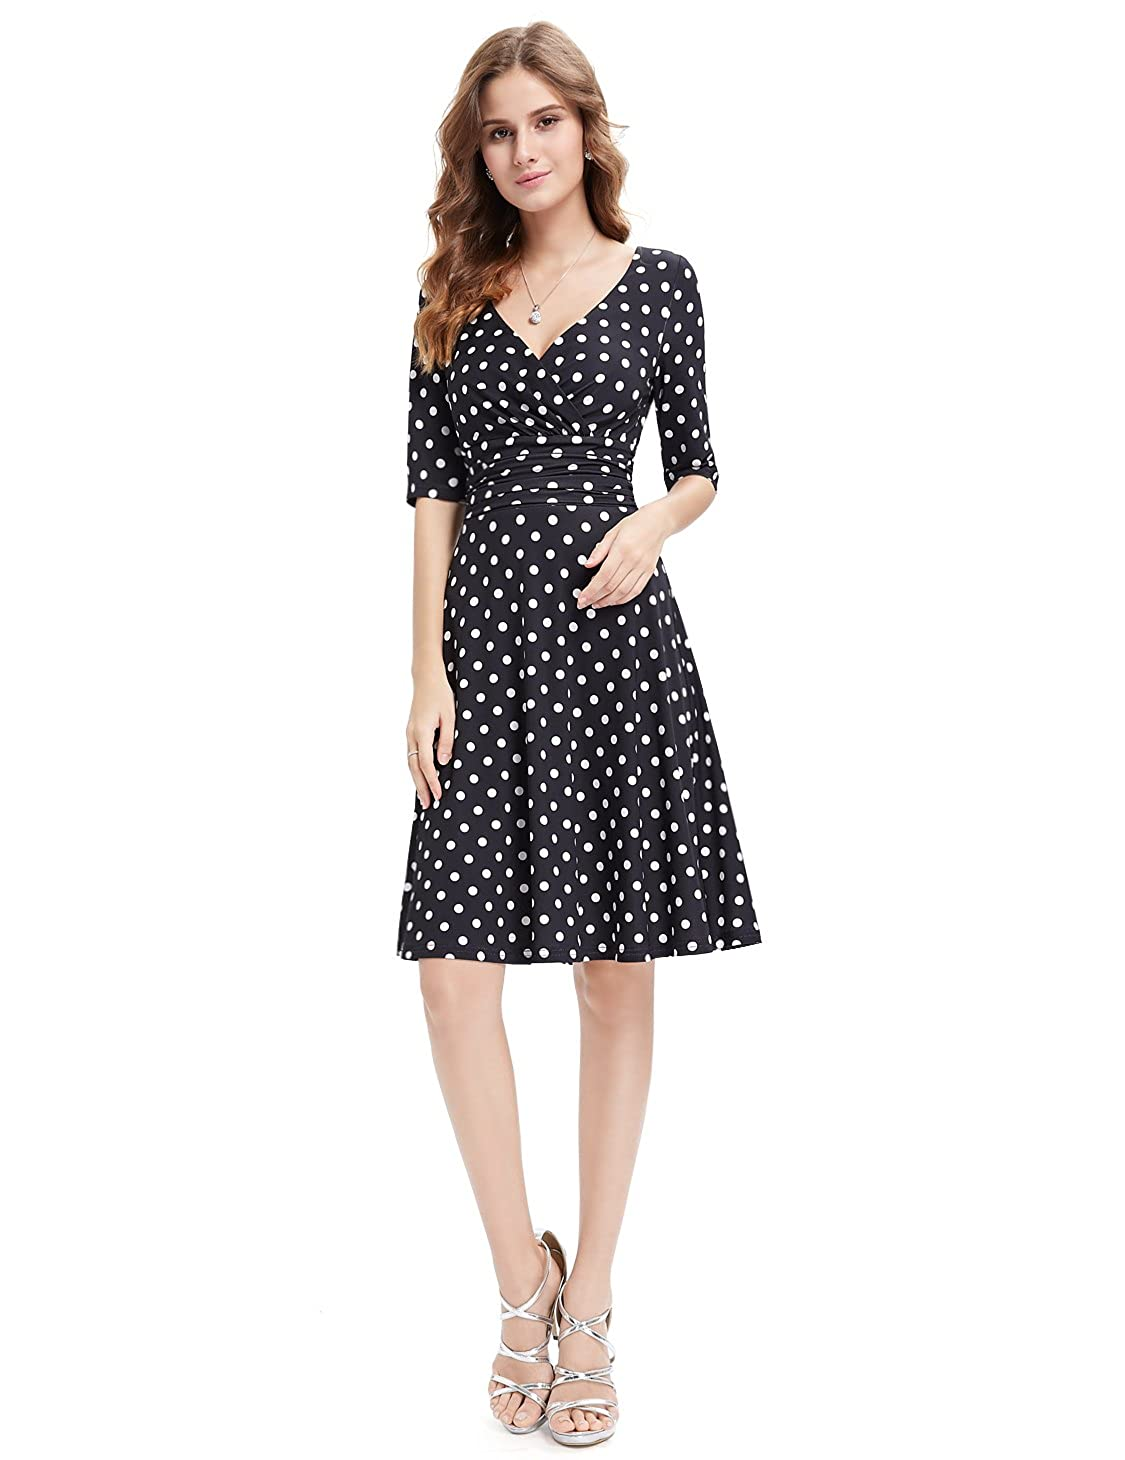 2f7d7875c1e Ever-Pretty 3 4 Sleeve Ruched Waist Classy V-Neck Casual Cocktail Dress  03632 at Amazon Women s Clothing store